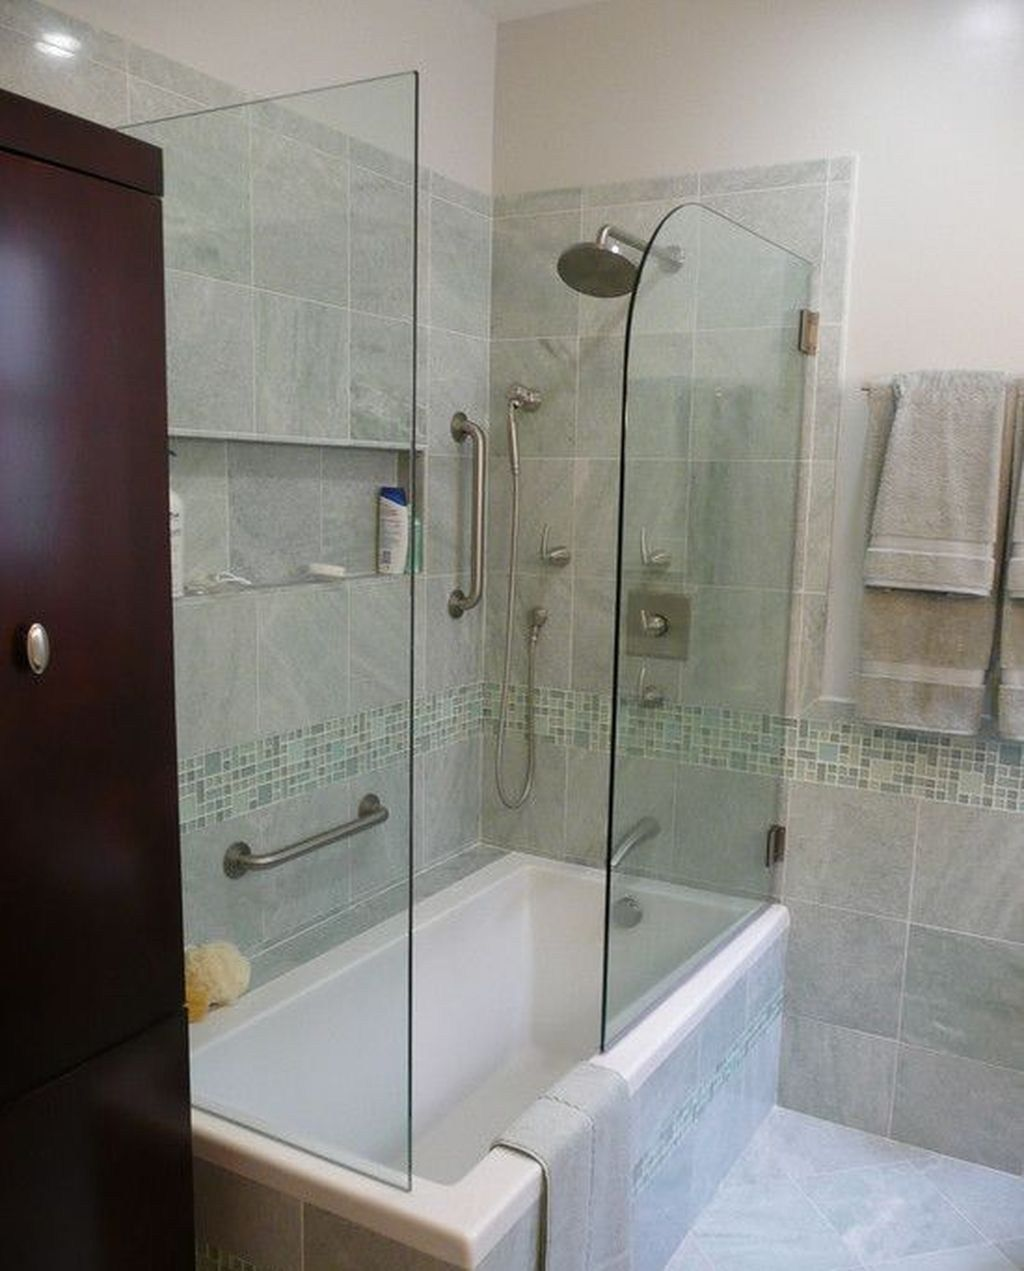 Stunning Small Bathroom Tub Shower Combo Remodeling 41 Bathroom Tub Shower Combo Shower Tub Combination Bathtub Shower Combo